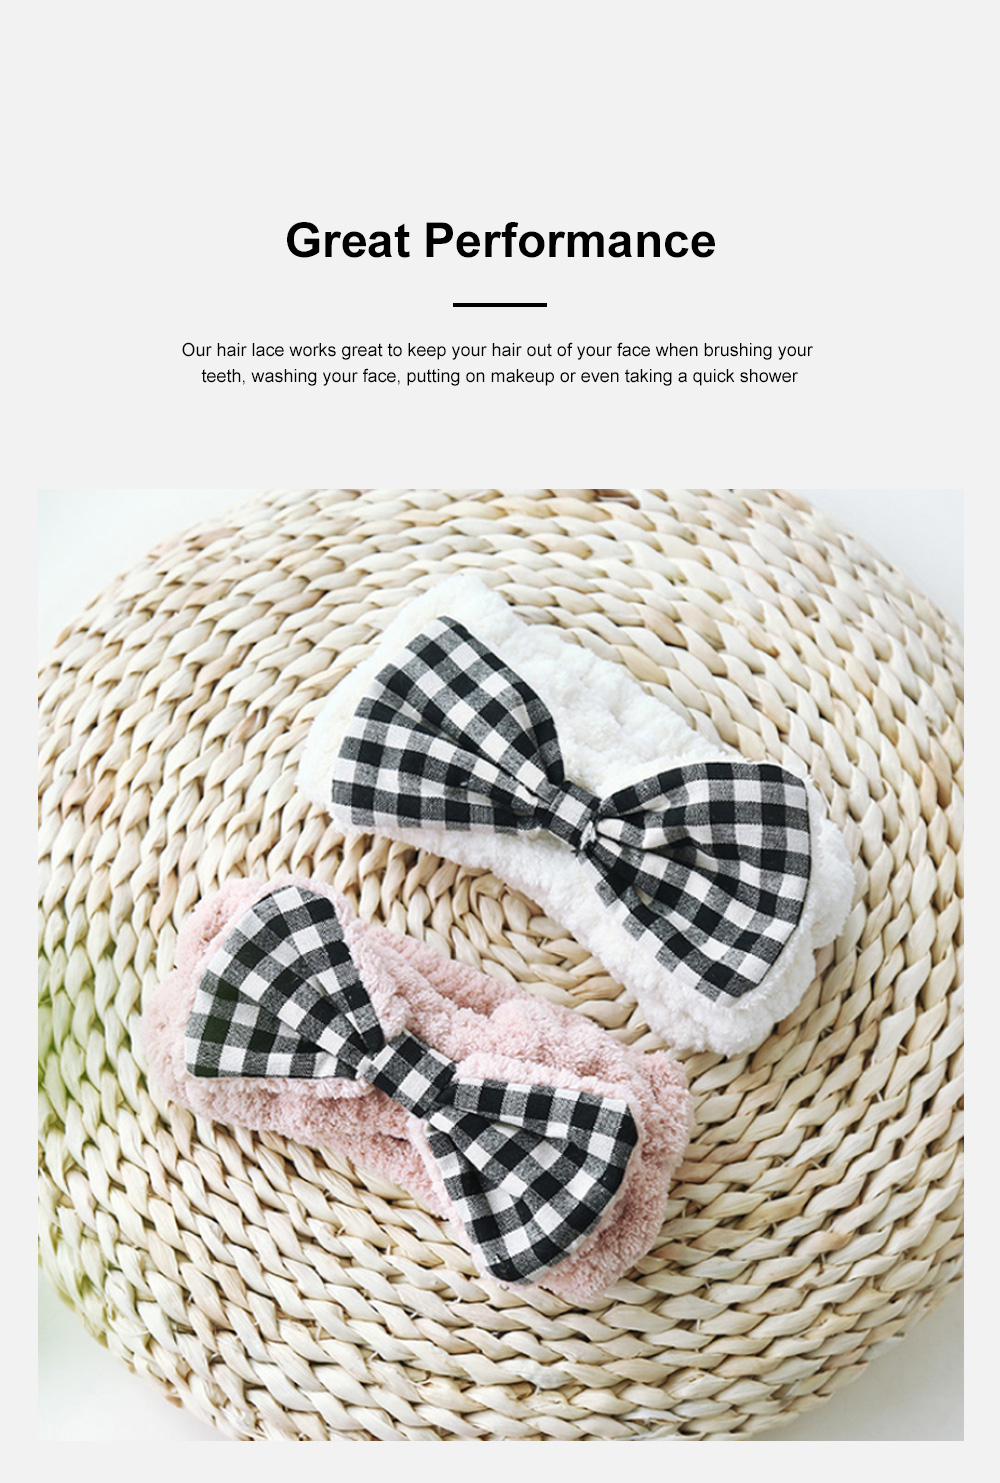 Coral Velvet Bowtie Headband Makeup Hairband with Elastic Tie for Spa Yoga Sports Shower 5